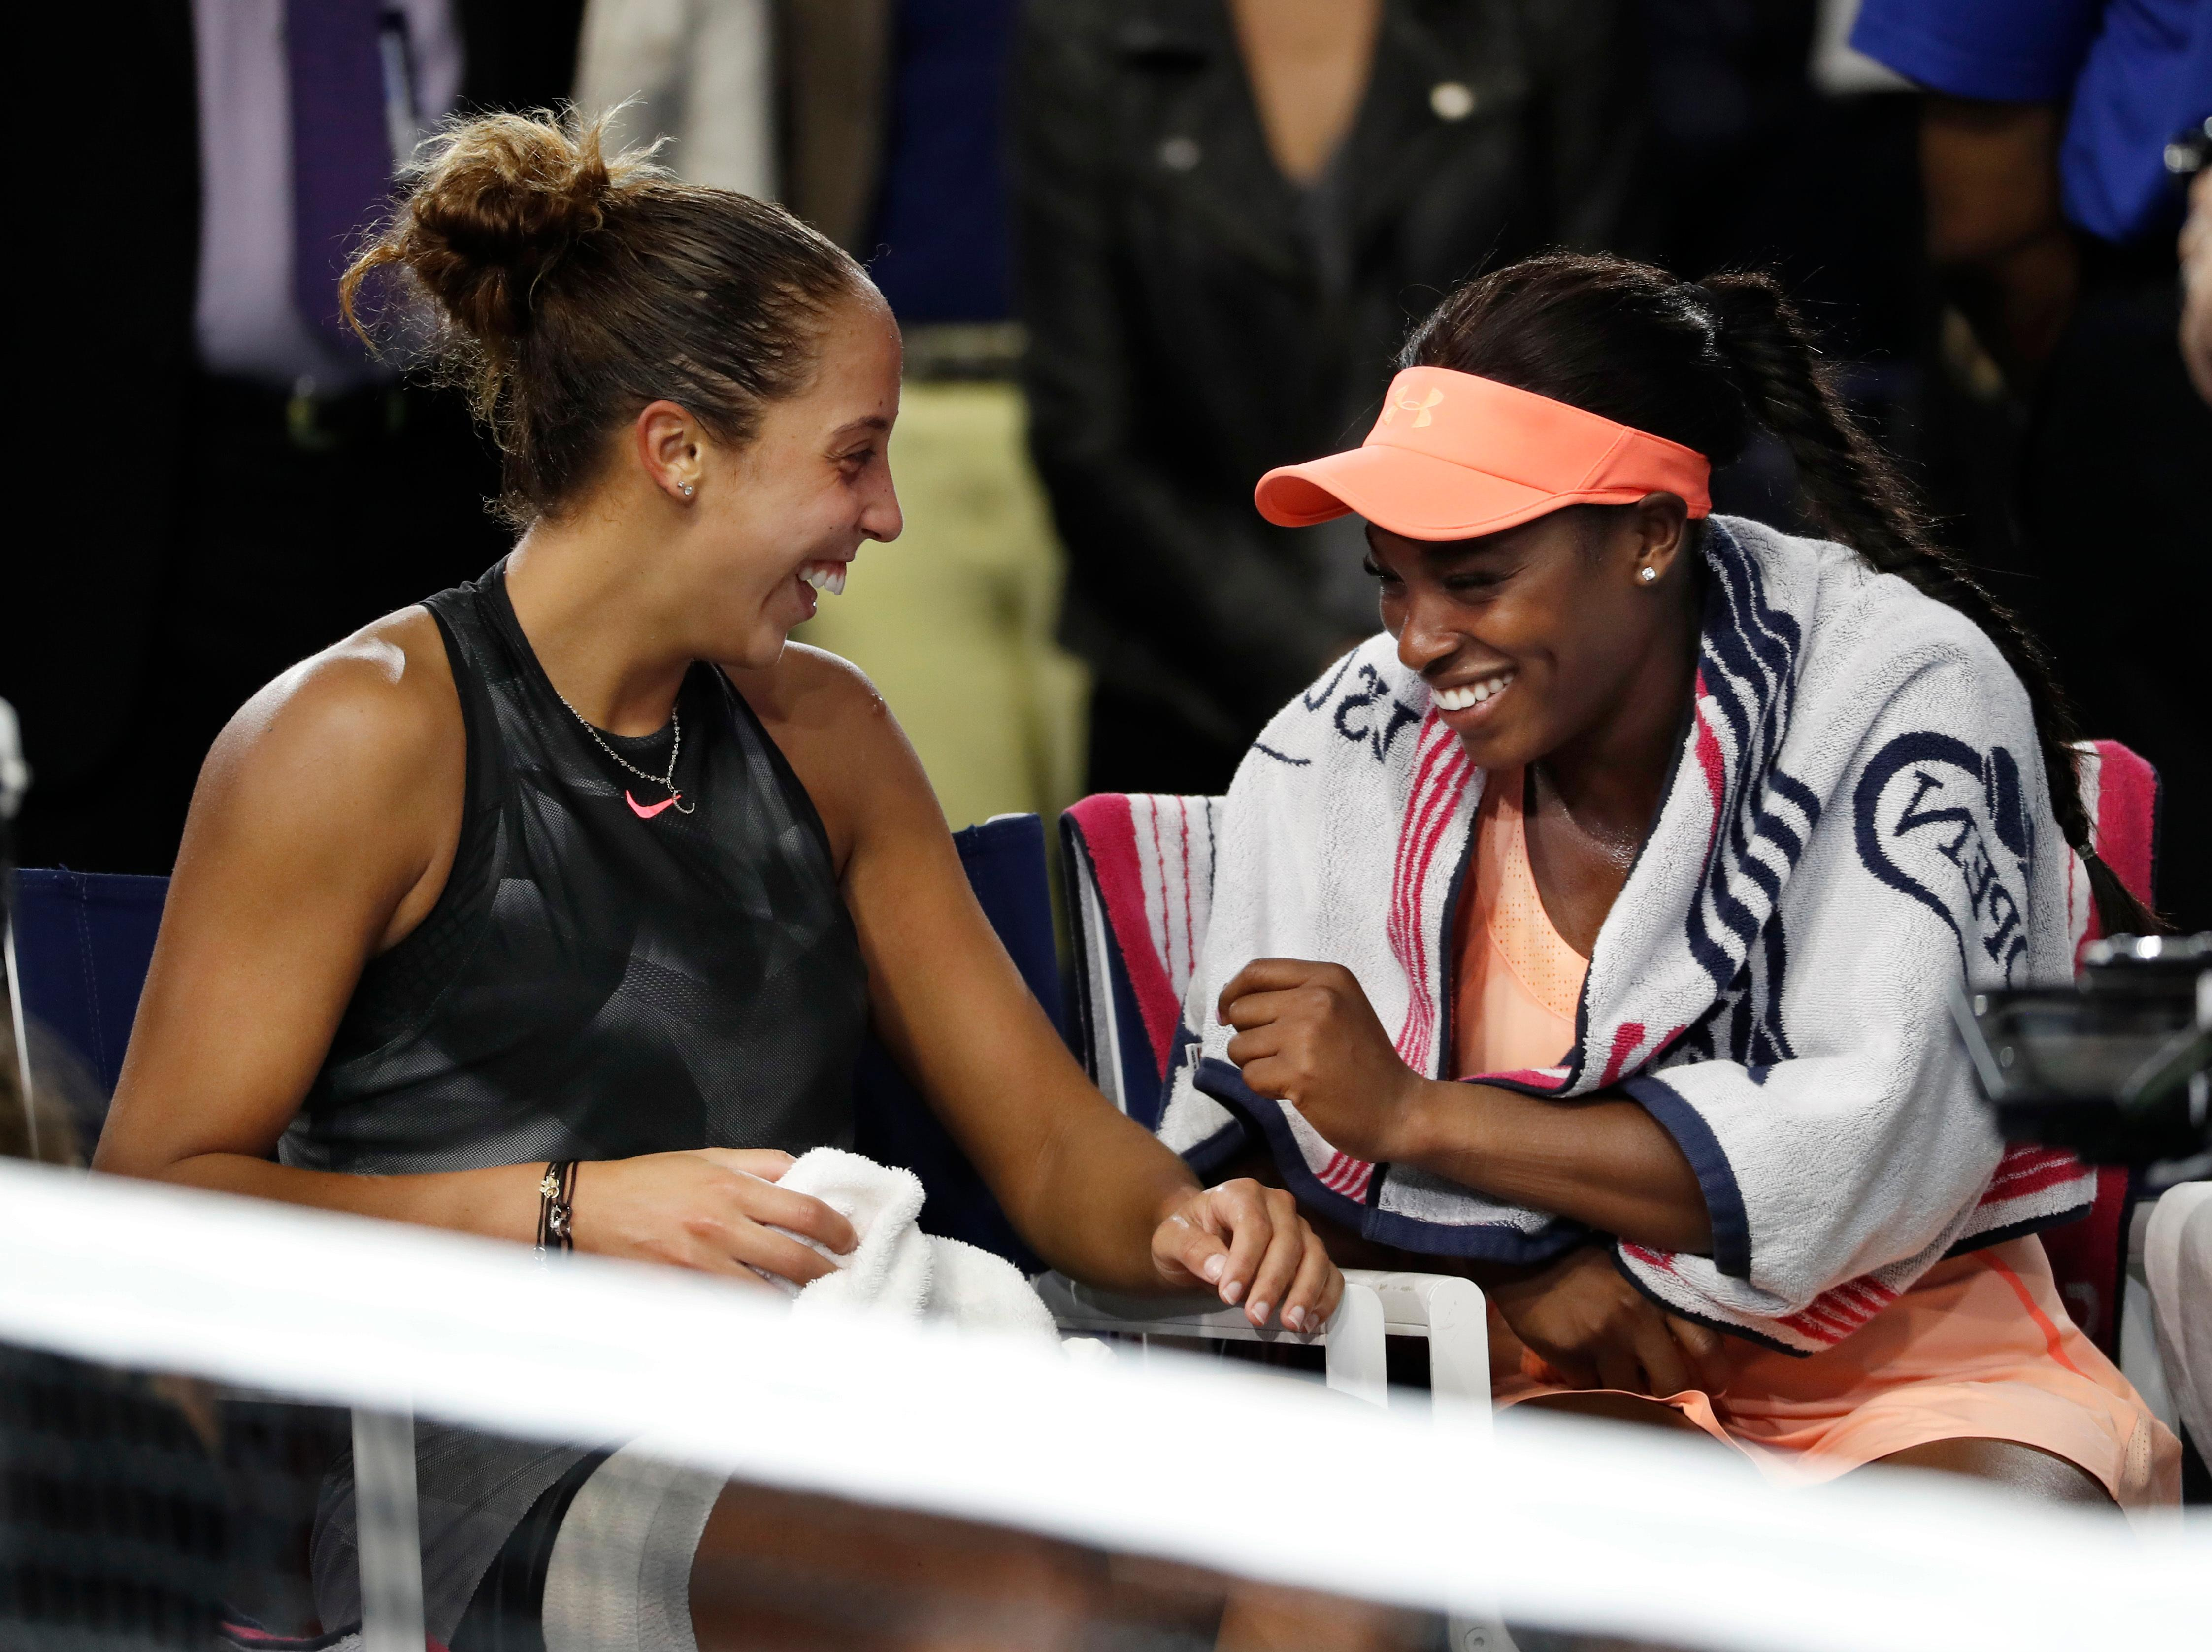 Sloane Stephens, of the United States, right, and Madison Keys, of the United States, talk after Stephens beat Keys in the women's singles final of the U.S. Open tennis tournament, Saturday, Sept. 9, 2017, in New York. (AP Photo/Andres Kudacki)